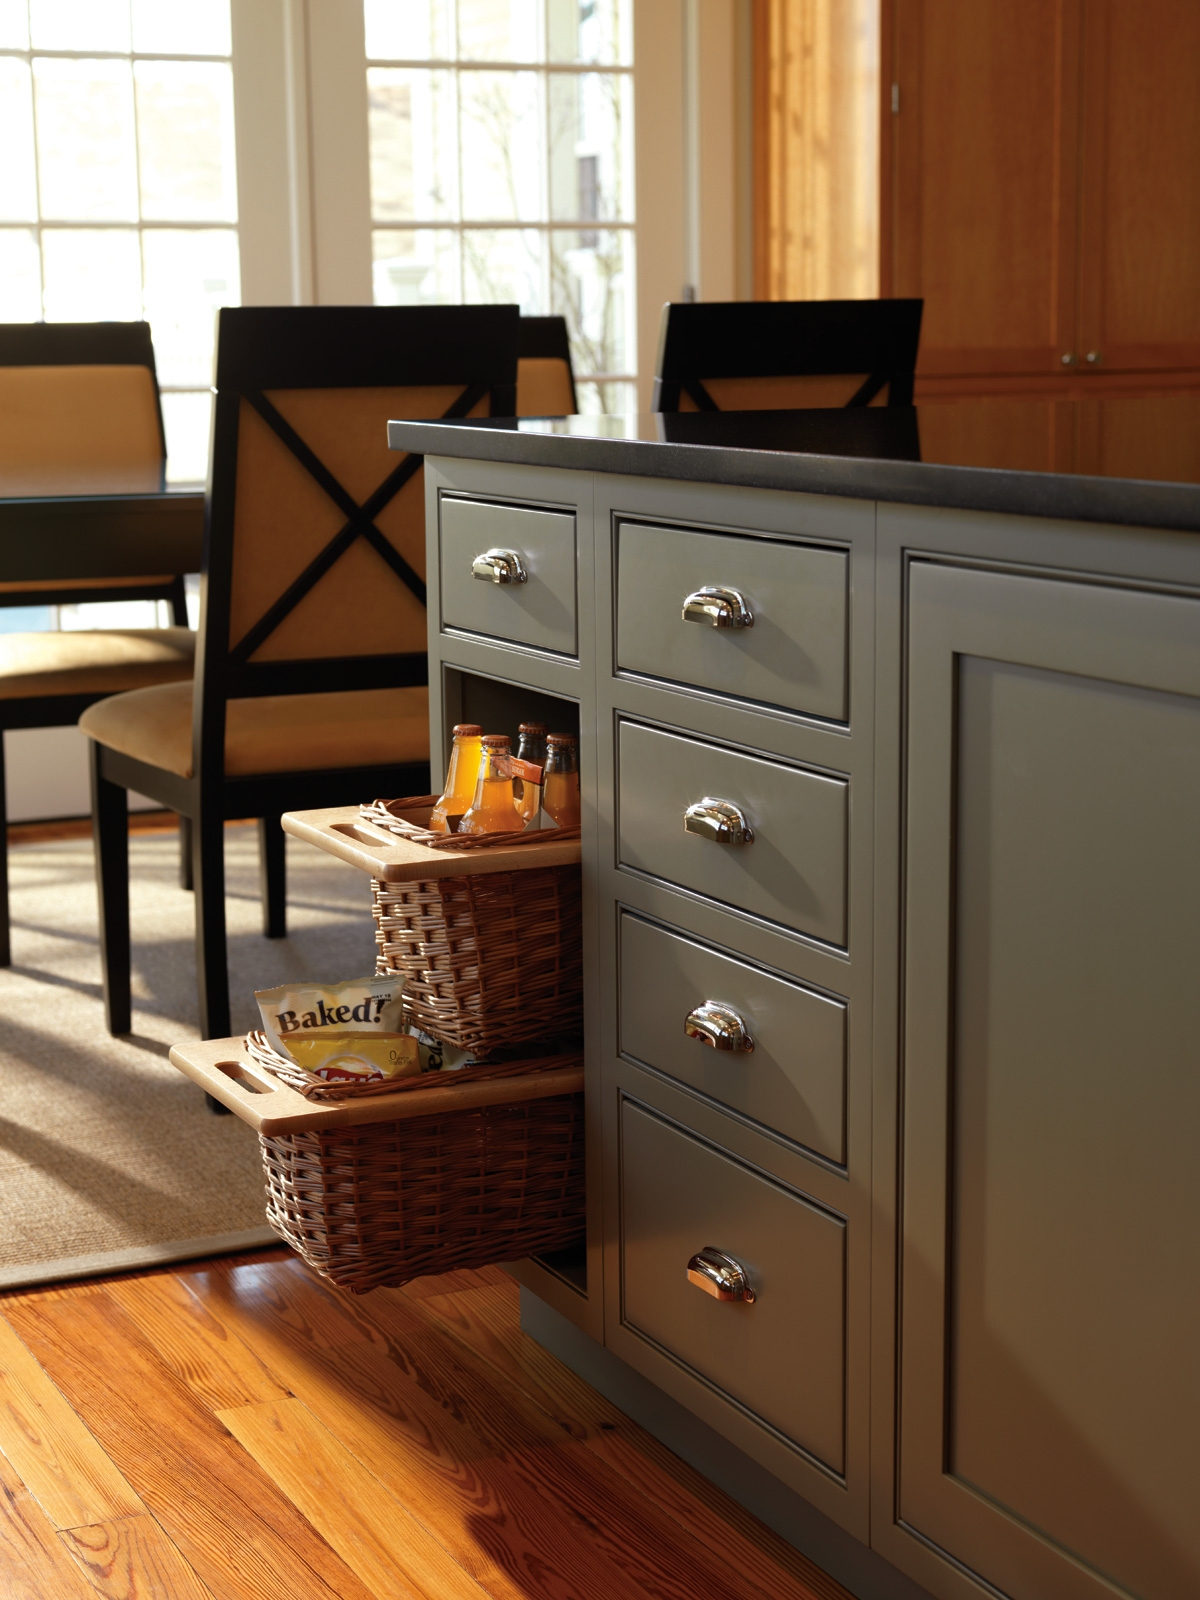 Wicker Baskets For Kitchen Cabinets